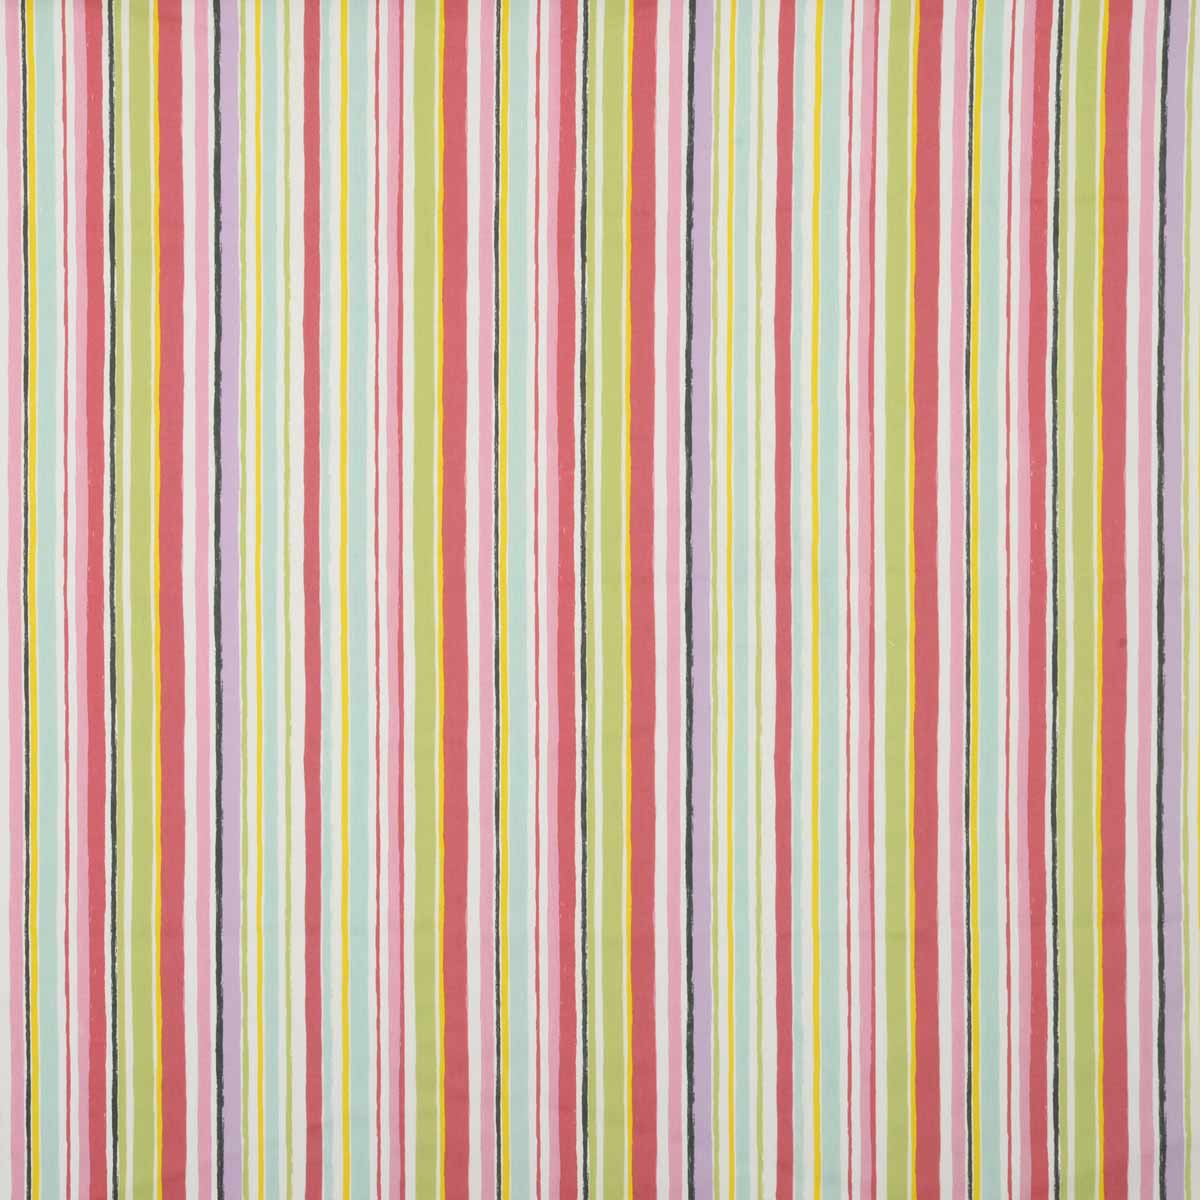 Stockists of Pretty Pink Zoom Curtain Fabric